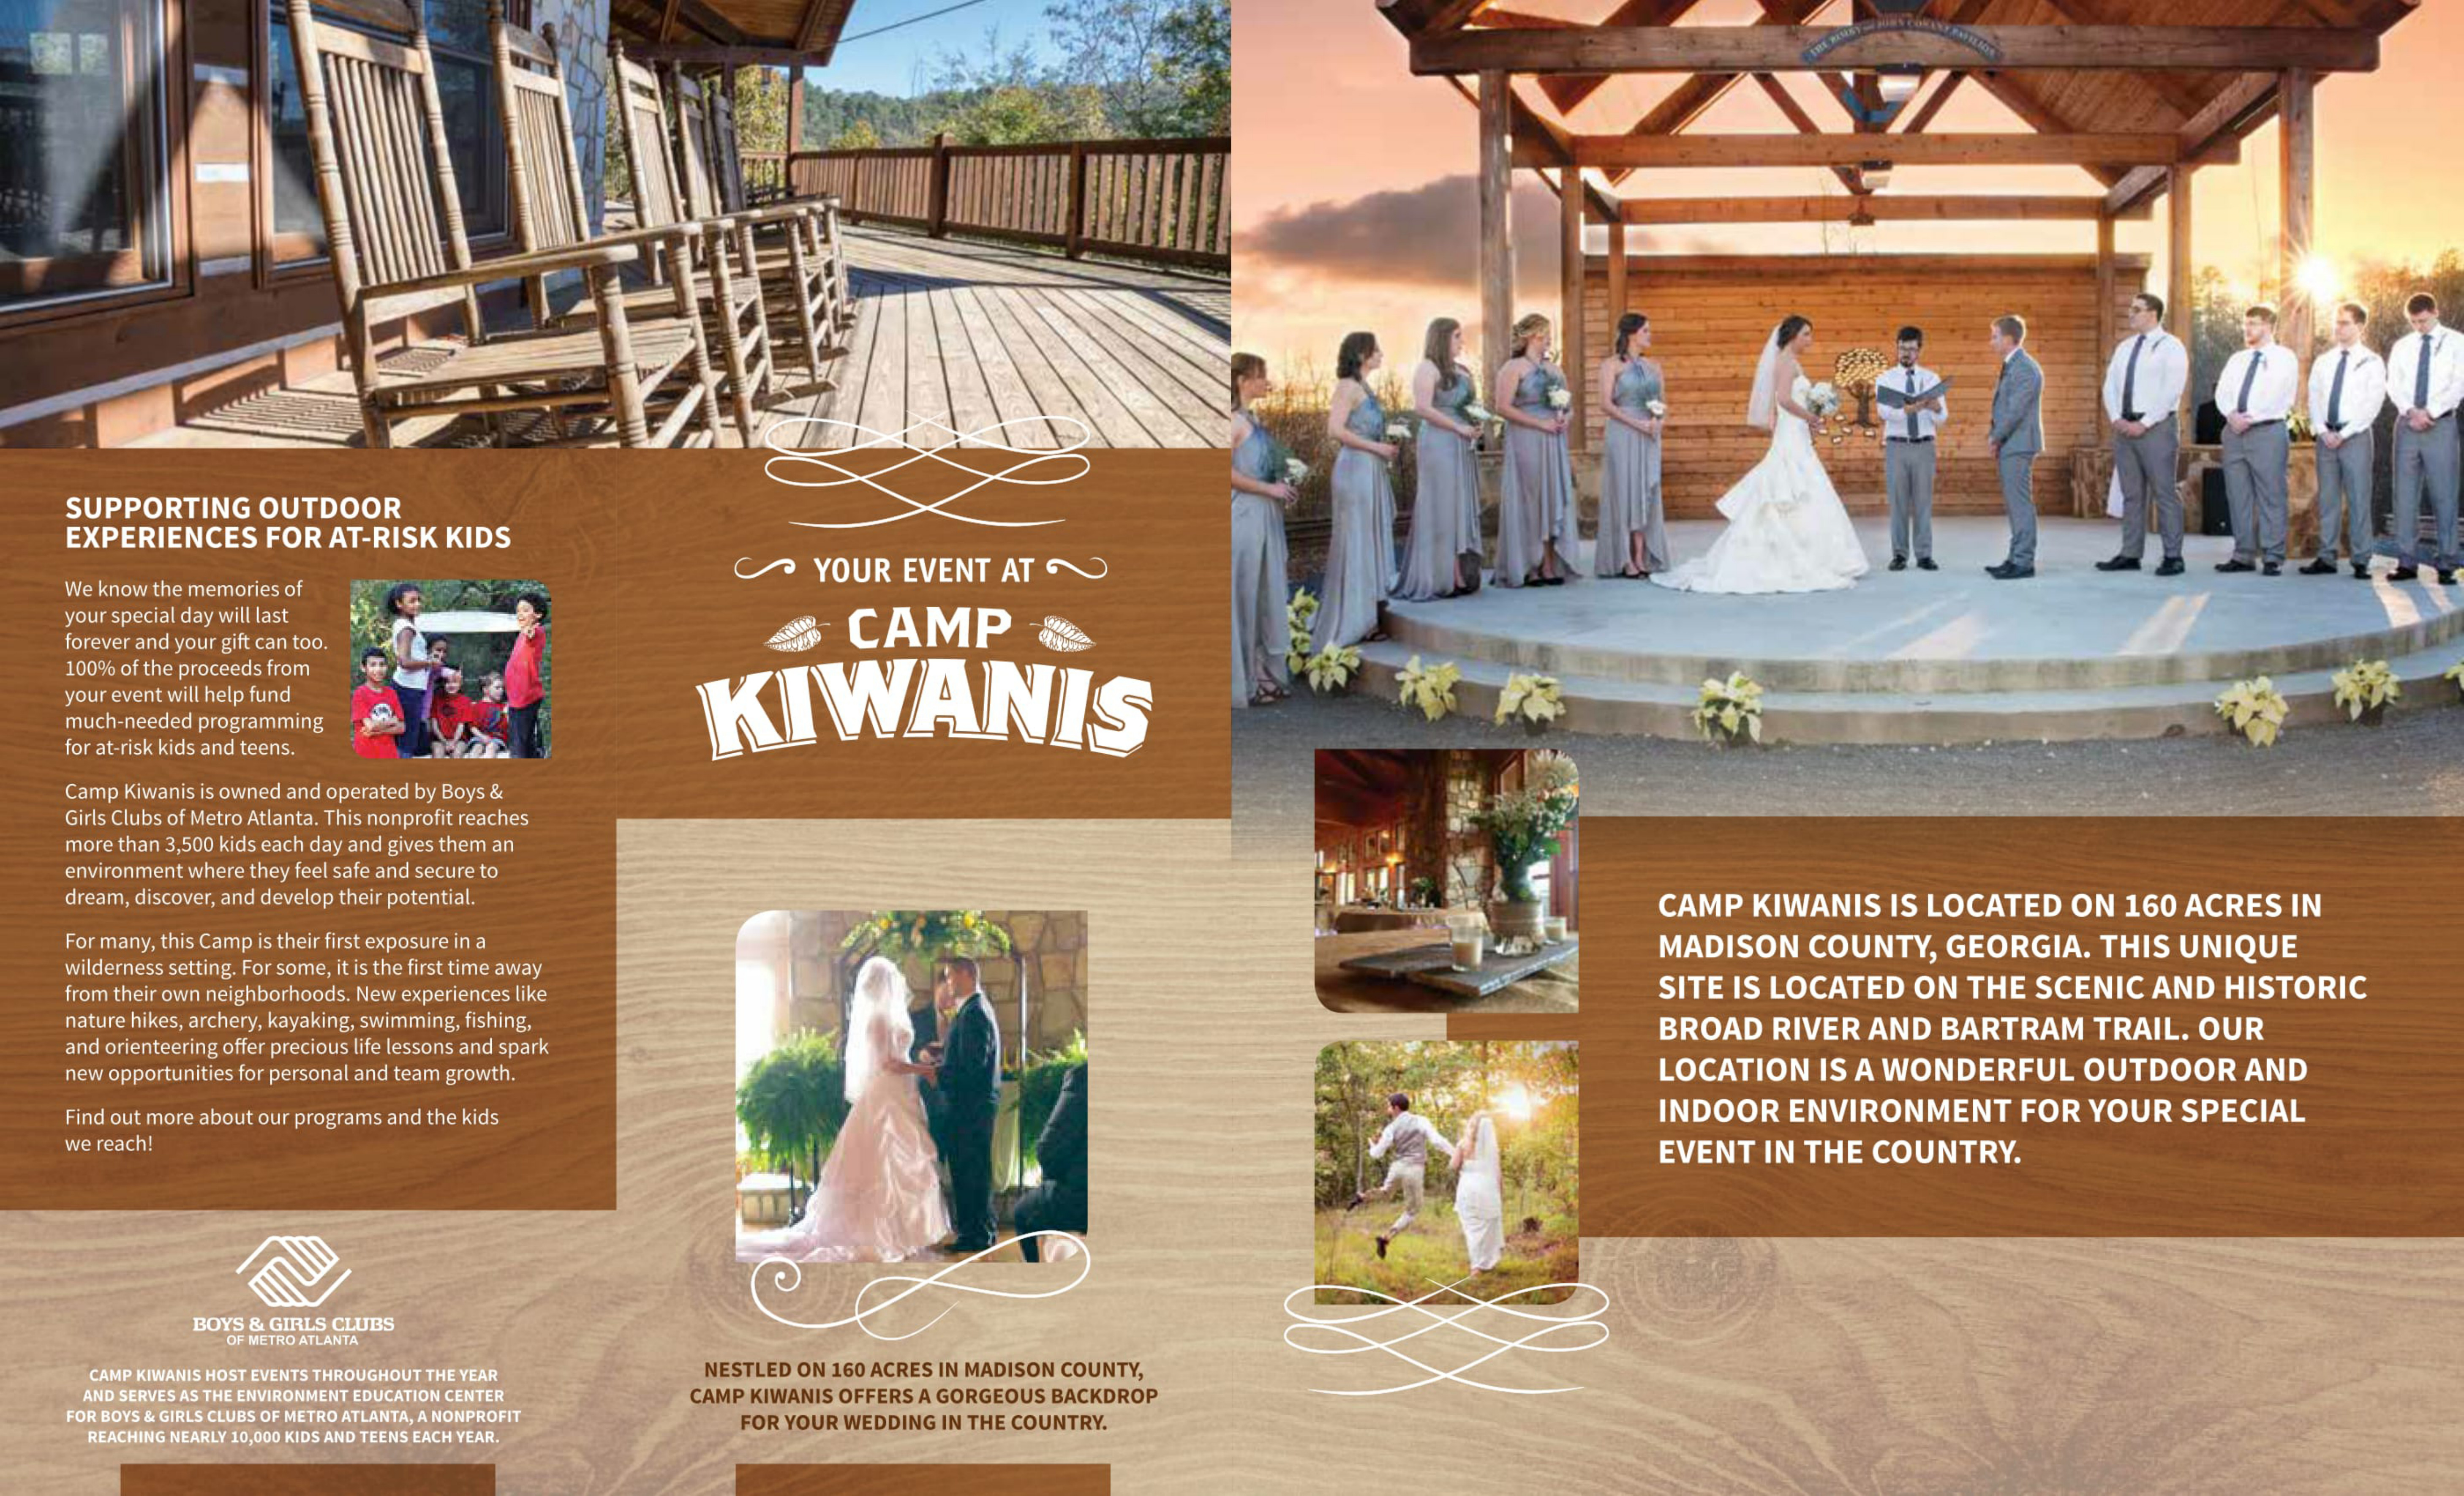 Camp Kiwanis Wedding & Events